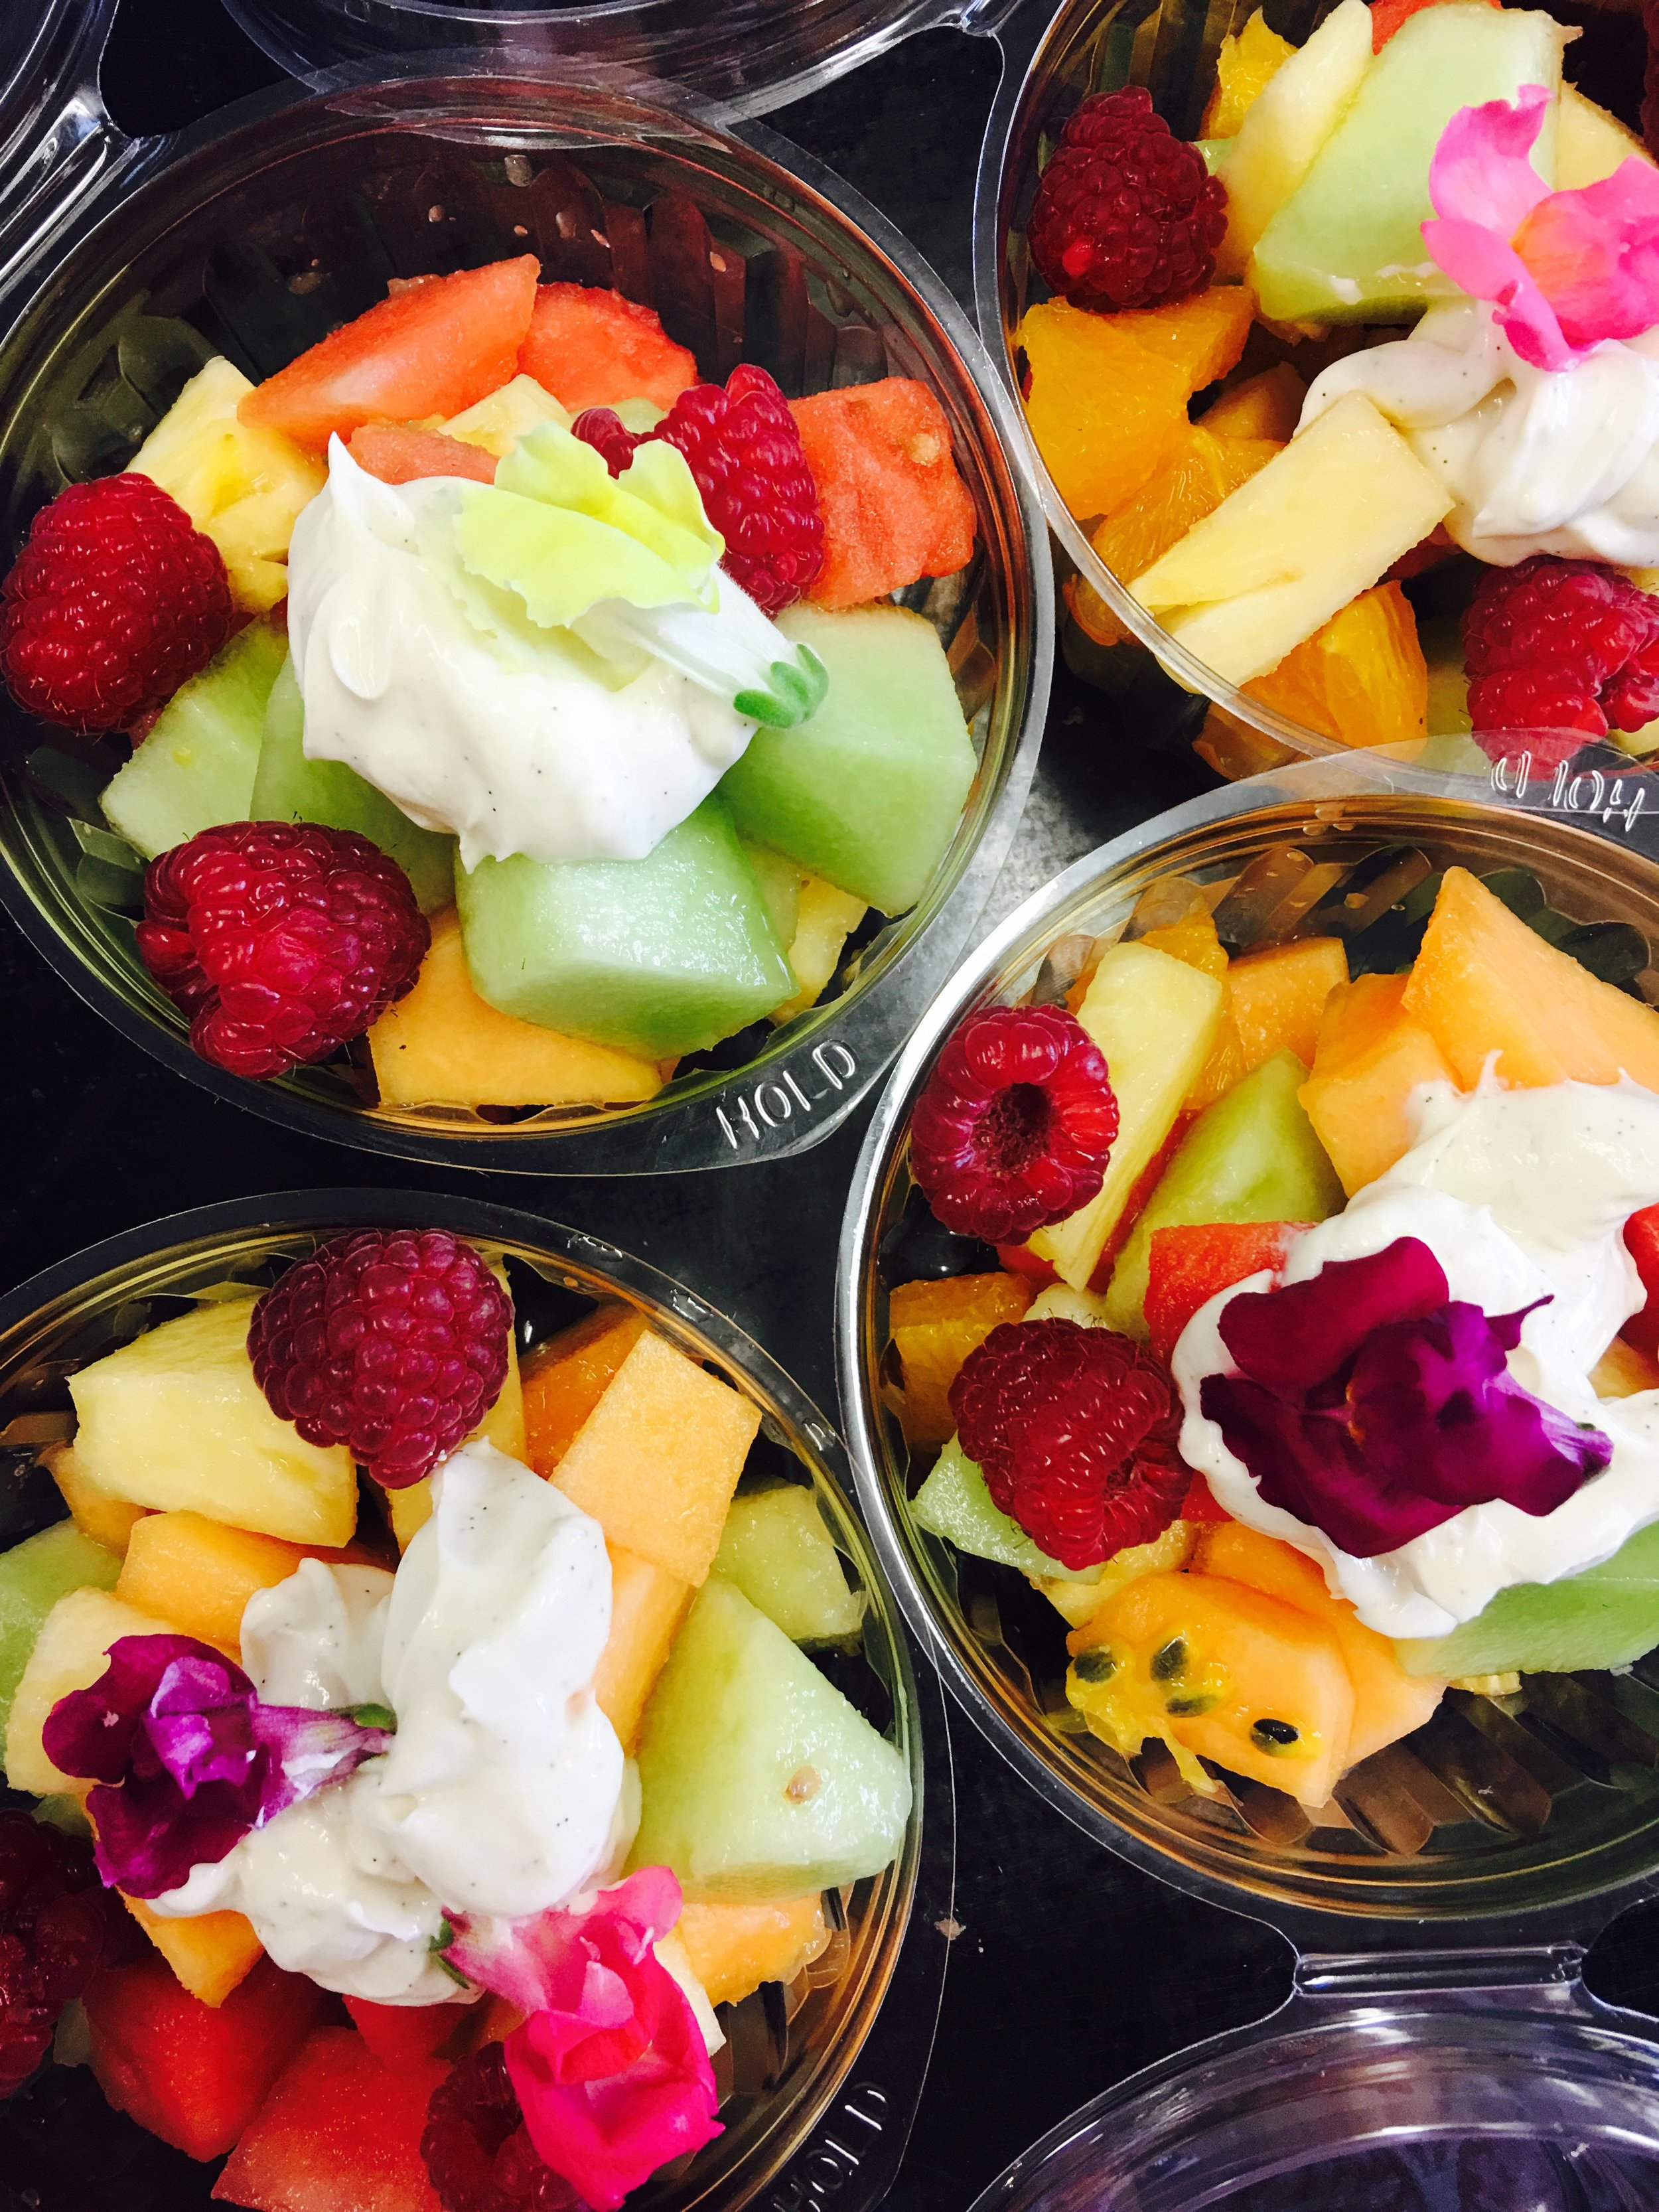 Fruit salad with flowers